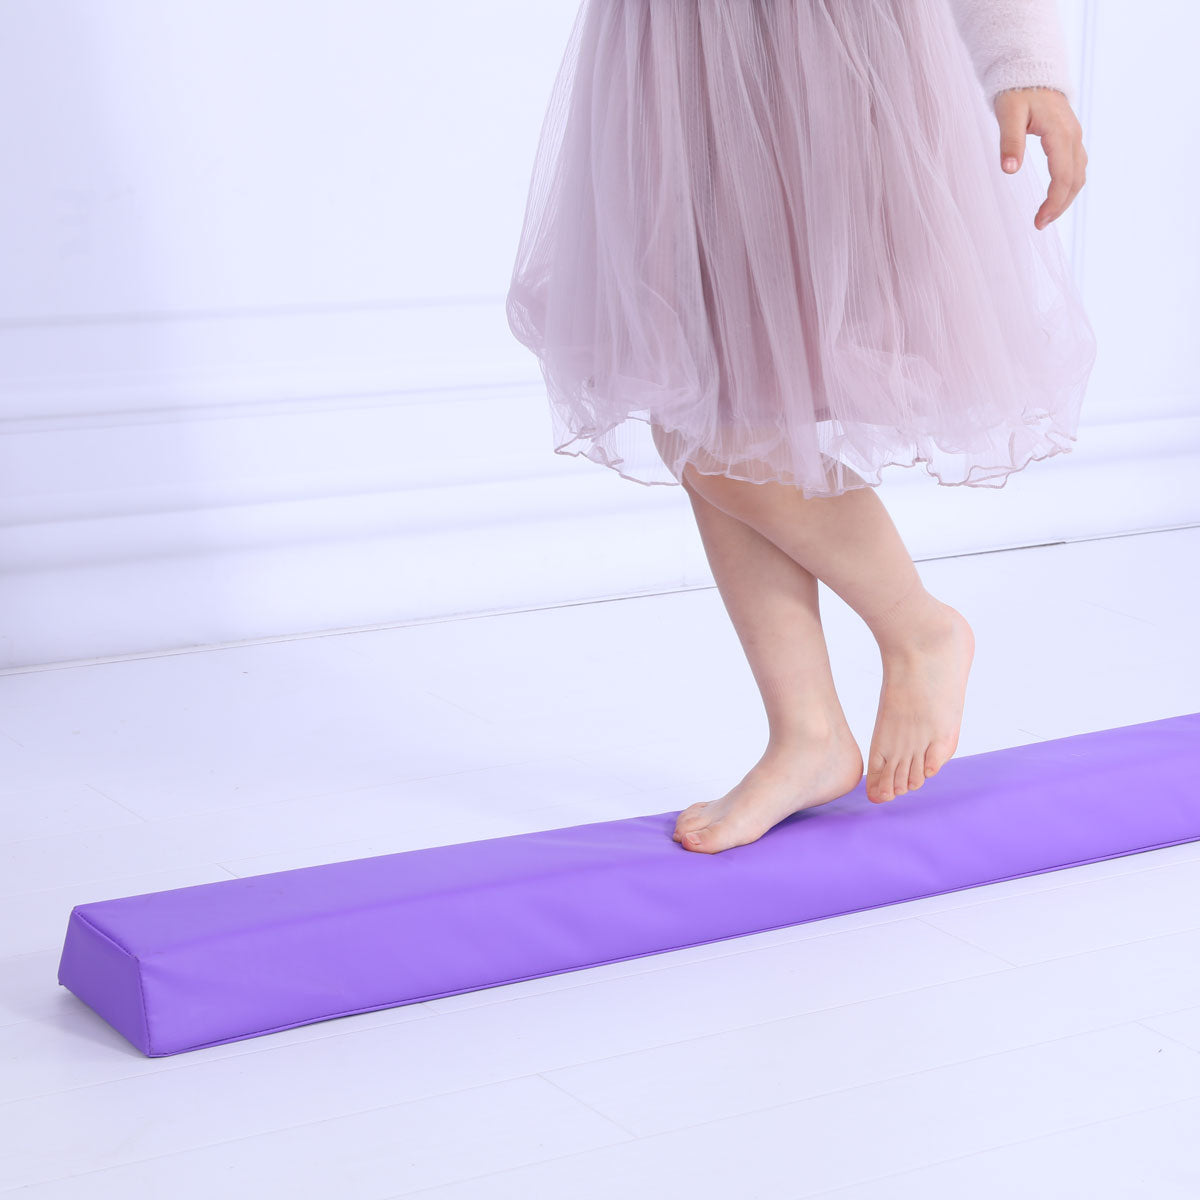 Starter Folding Gymnastics Balance Beam Practice Safe Balance Beam for Kids 240cm/270cm - Purple